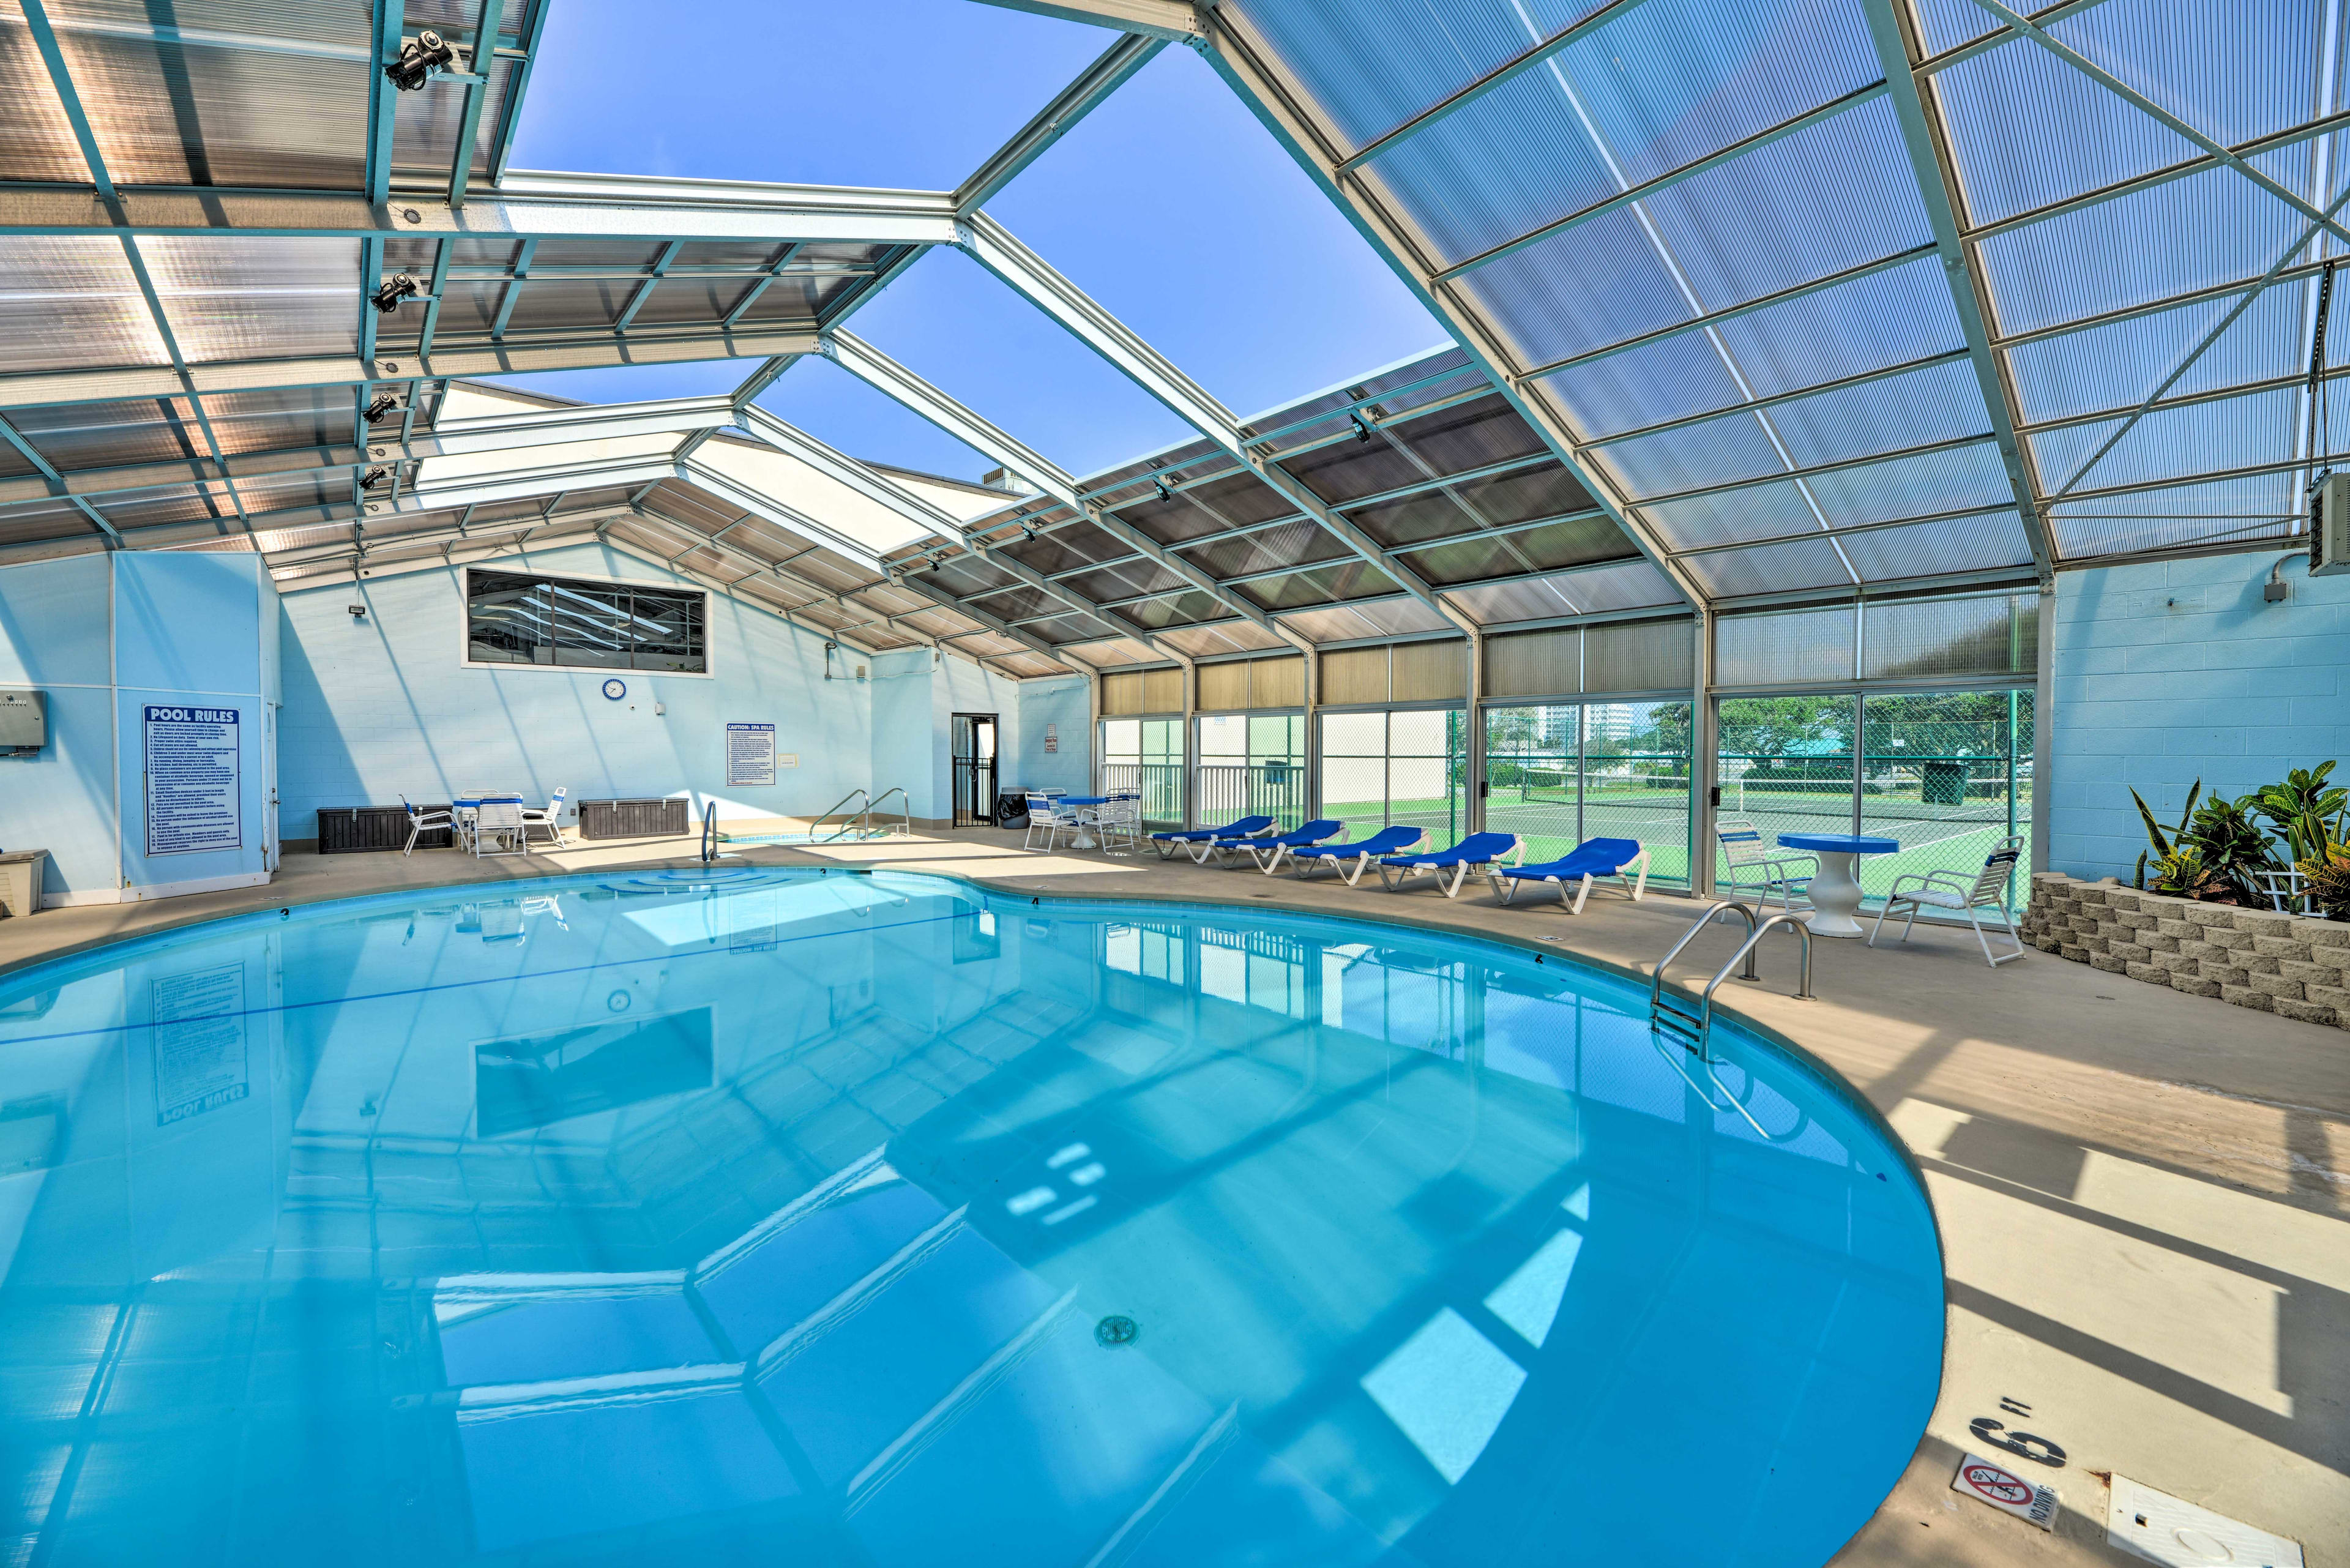 The property has hot tubs, an indoor pool, outdoor pool, and more!